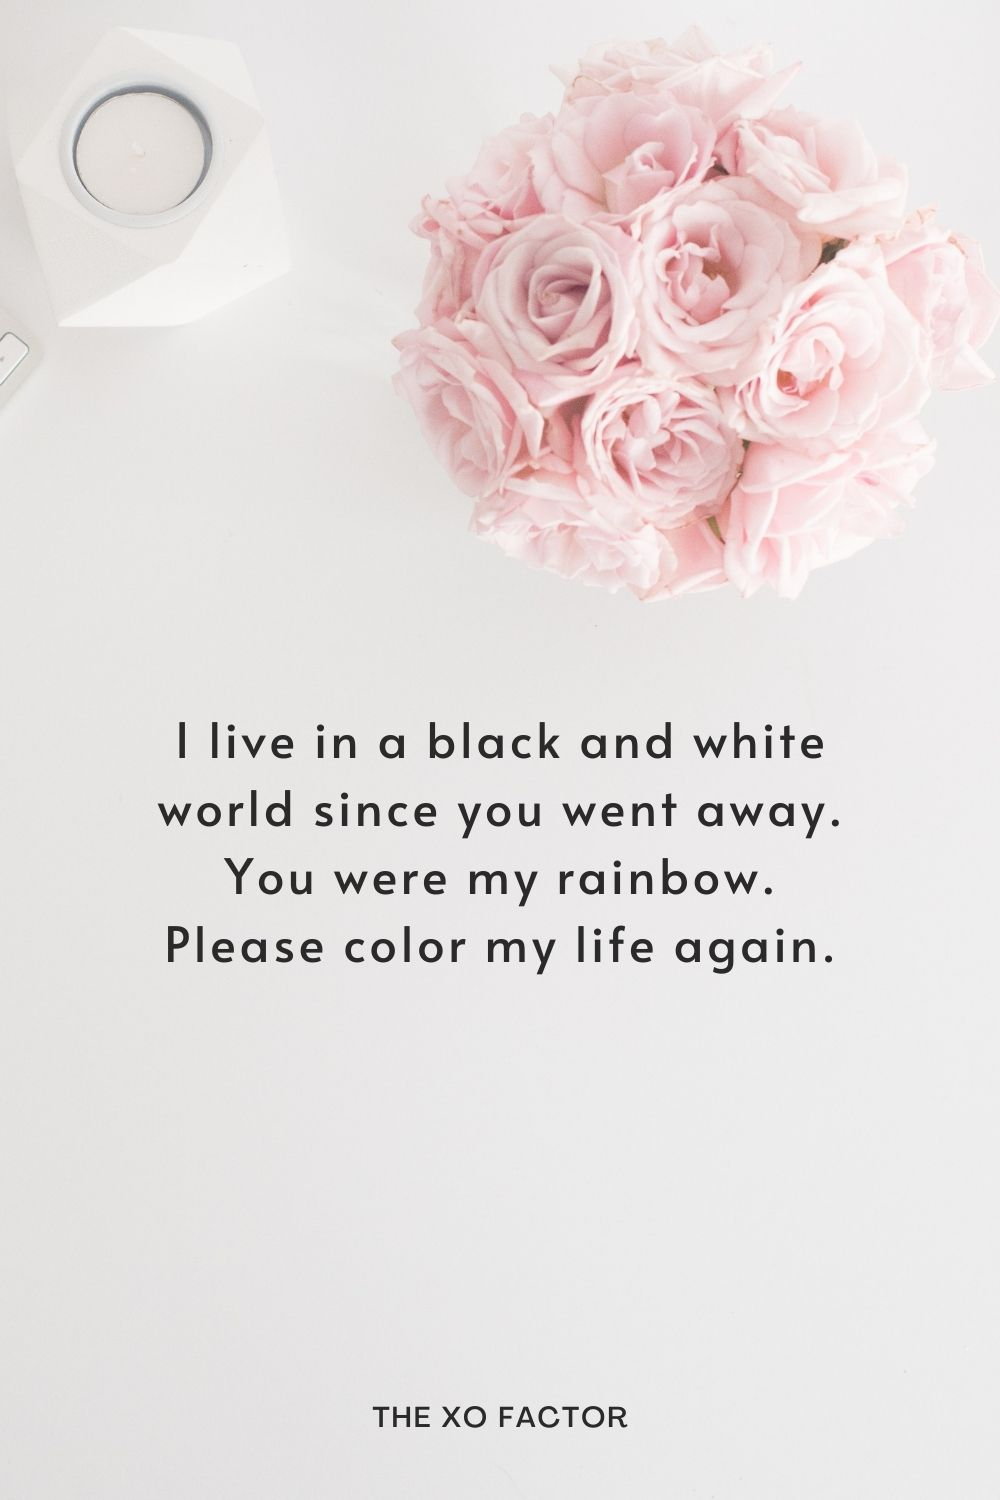 I live in a black and white world since you went away. You were my rainbow. Please color my life again.